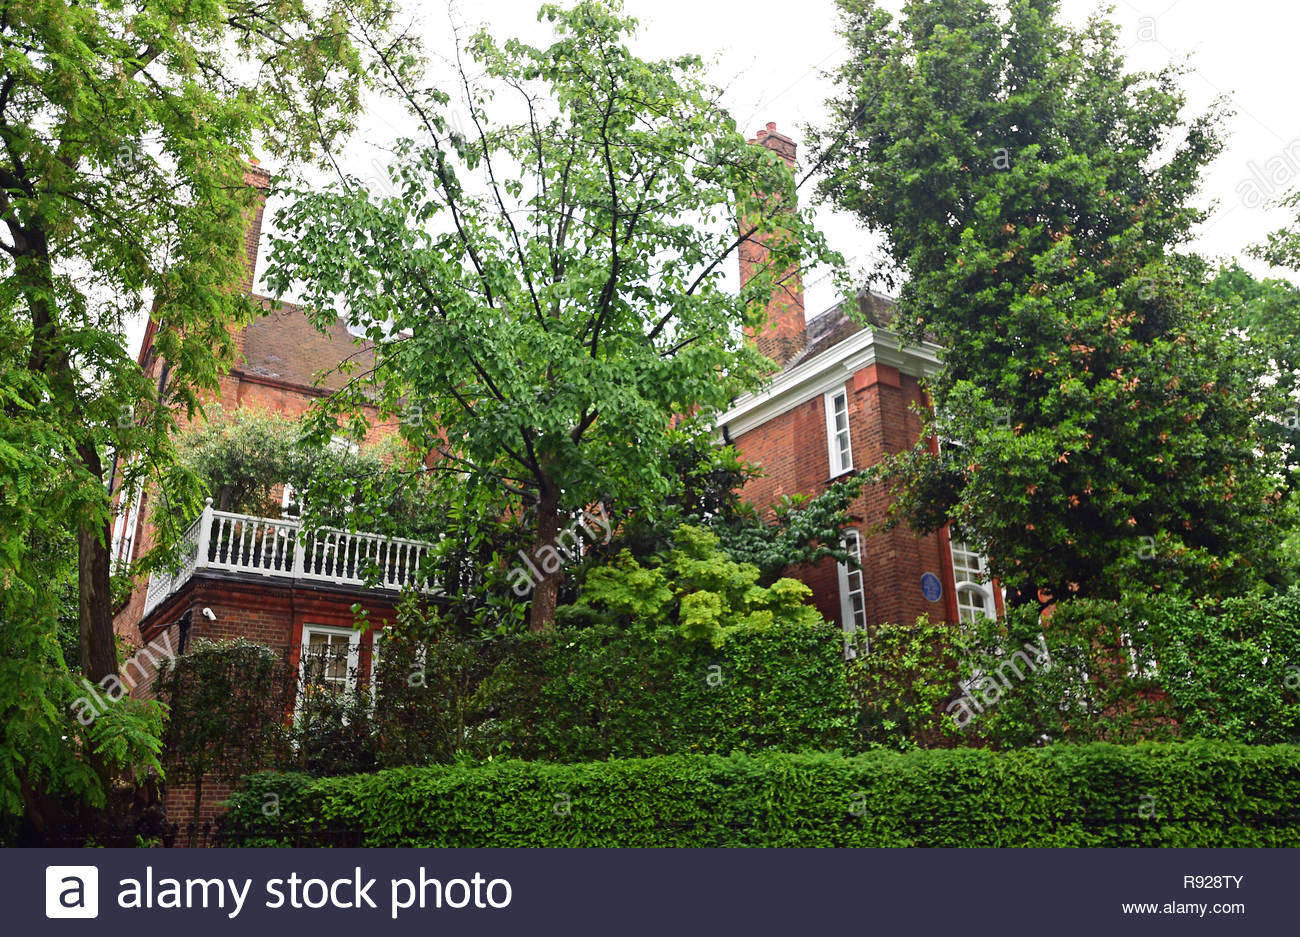 Jimmy Page West London Home Stock Photos Jimmy Page West London Home Stock Images Alamy